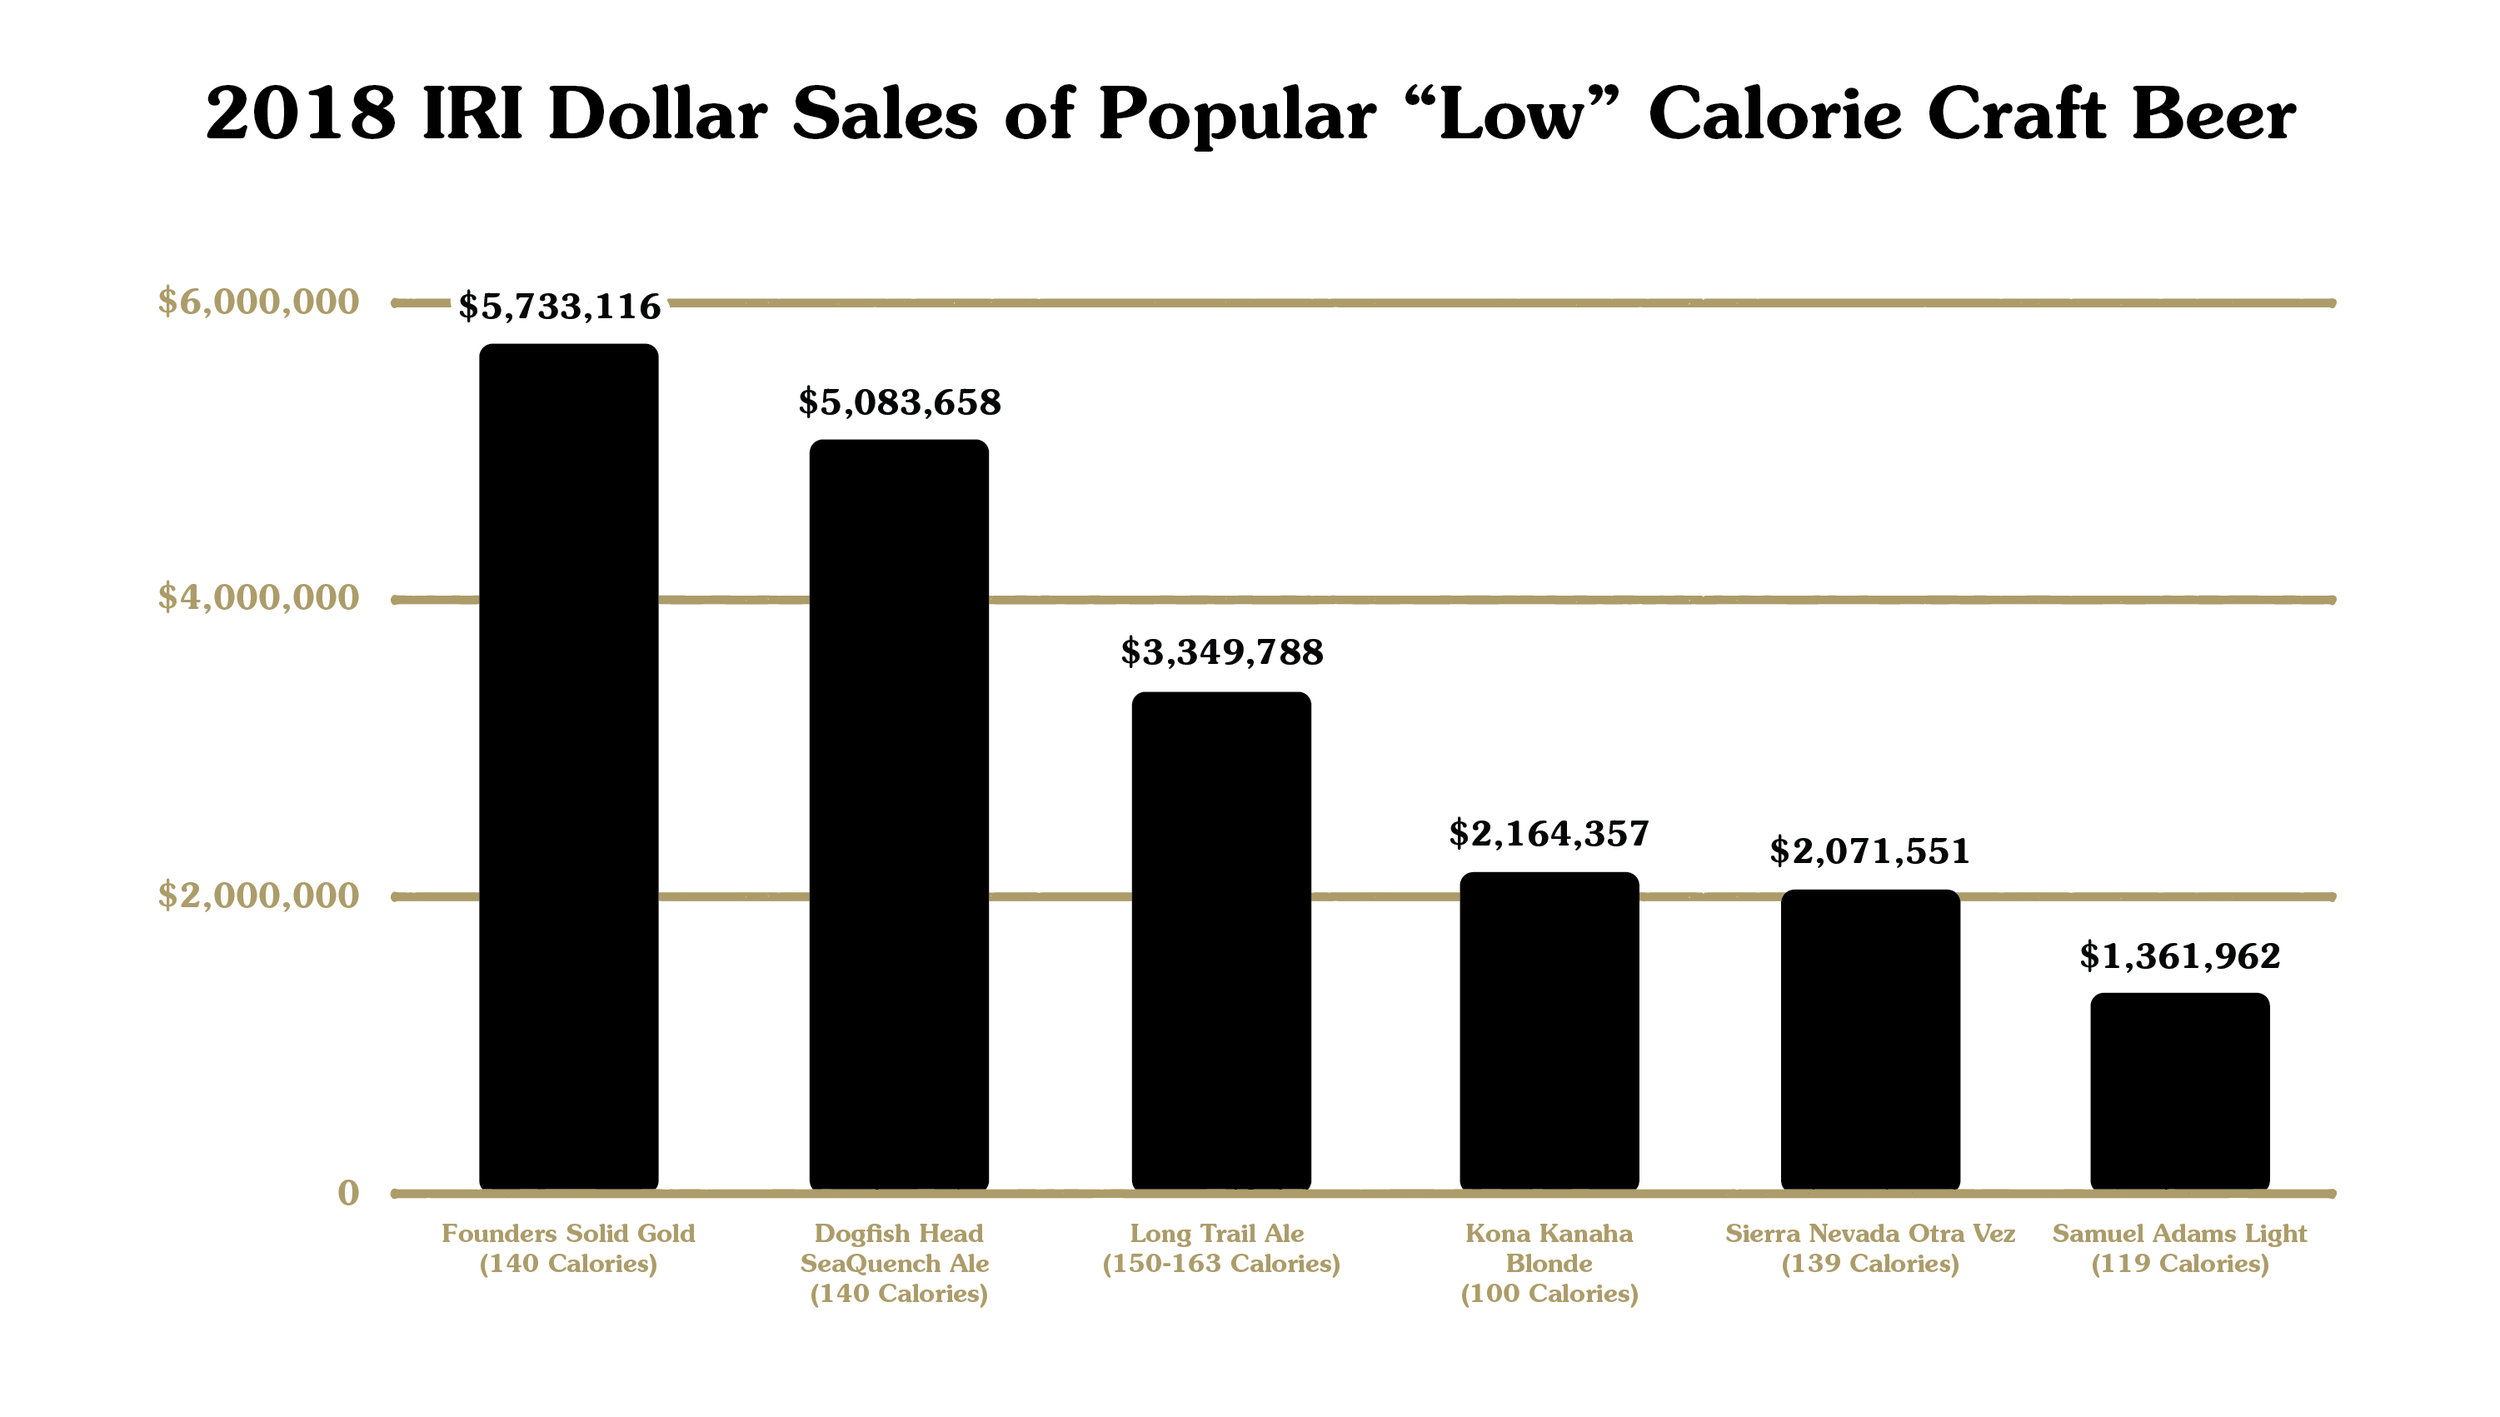 Calories according to online estimates. (Click to enlarge.)